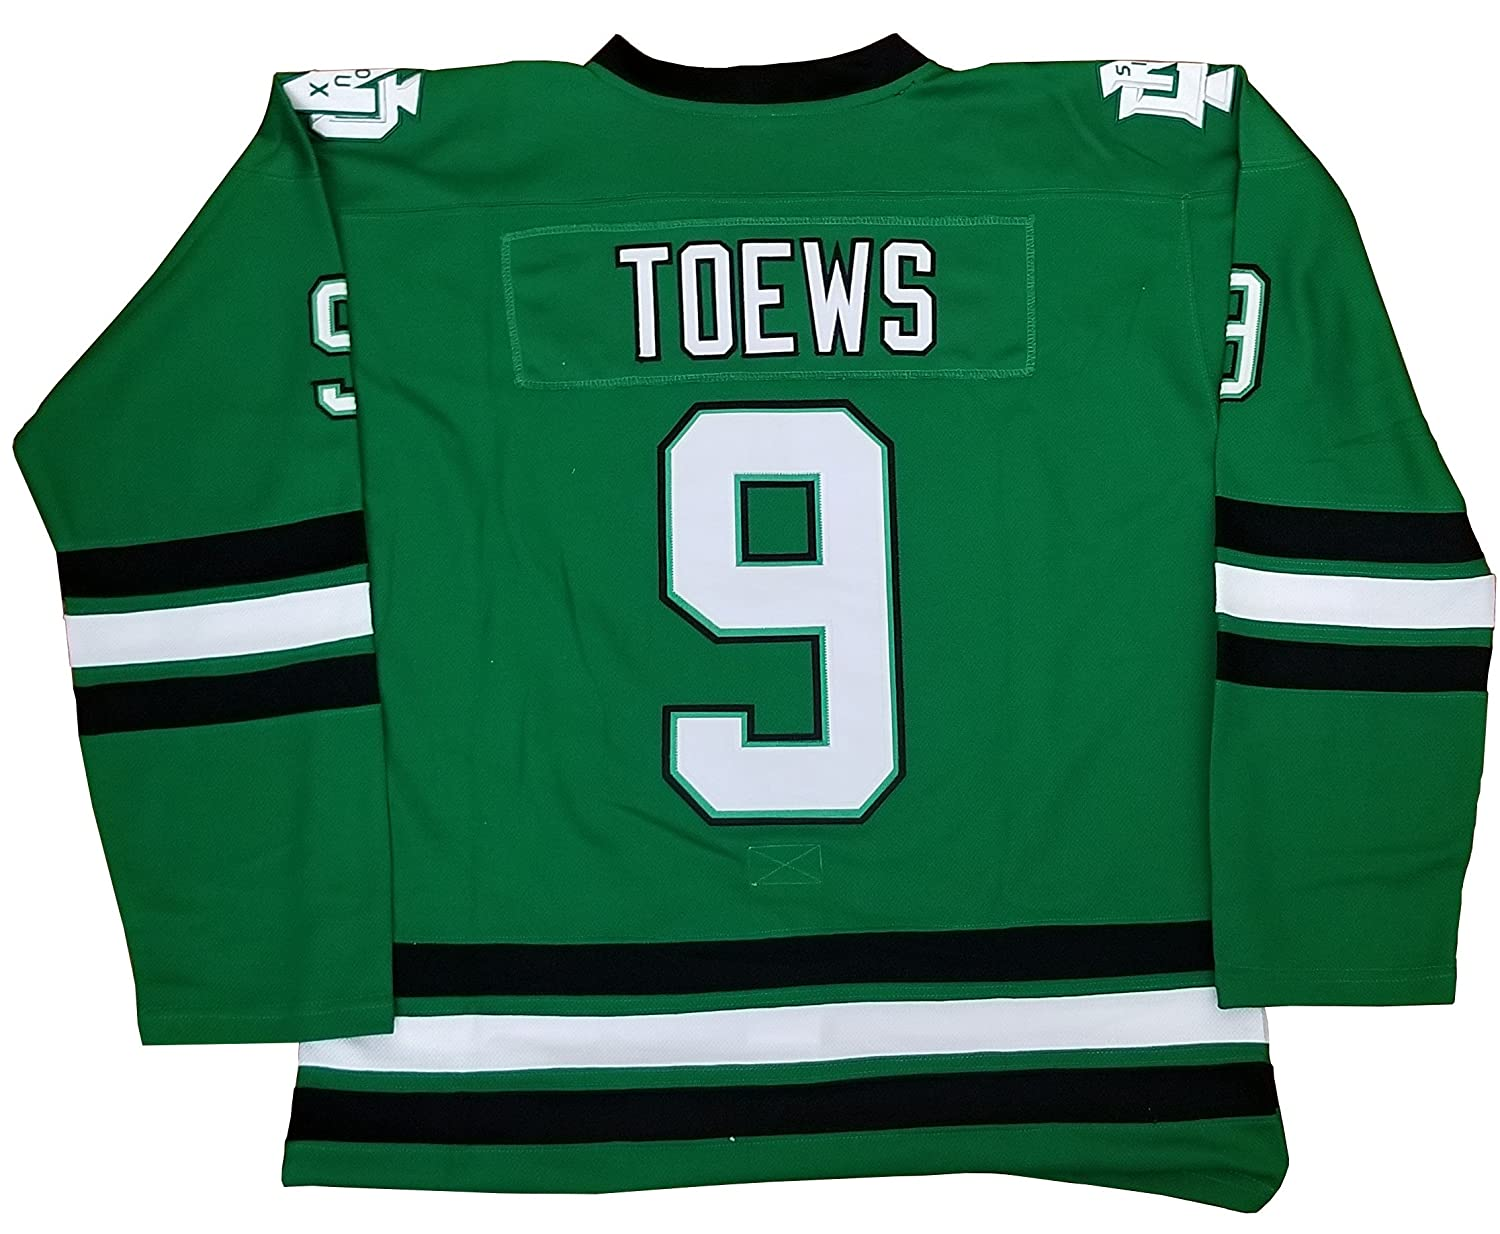 newest collection 2ff36 2955e Kooy Jonathan Toews #9 North Dakota Sioux Green Hockey Jersey Men